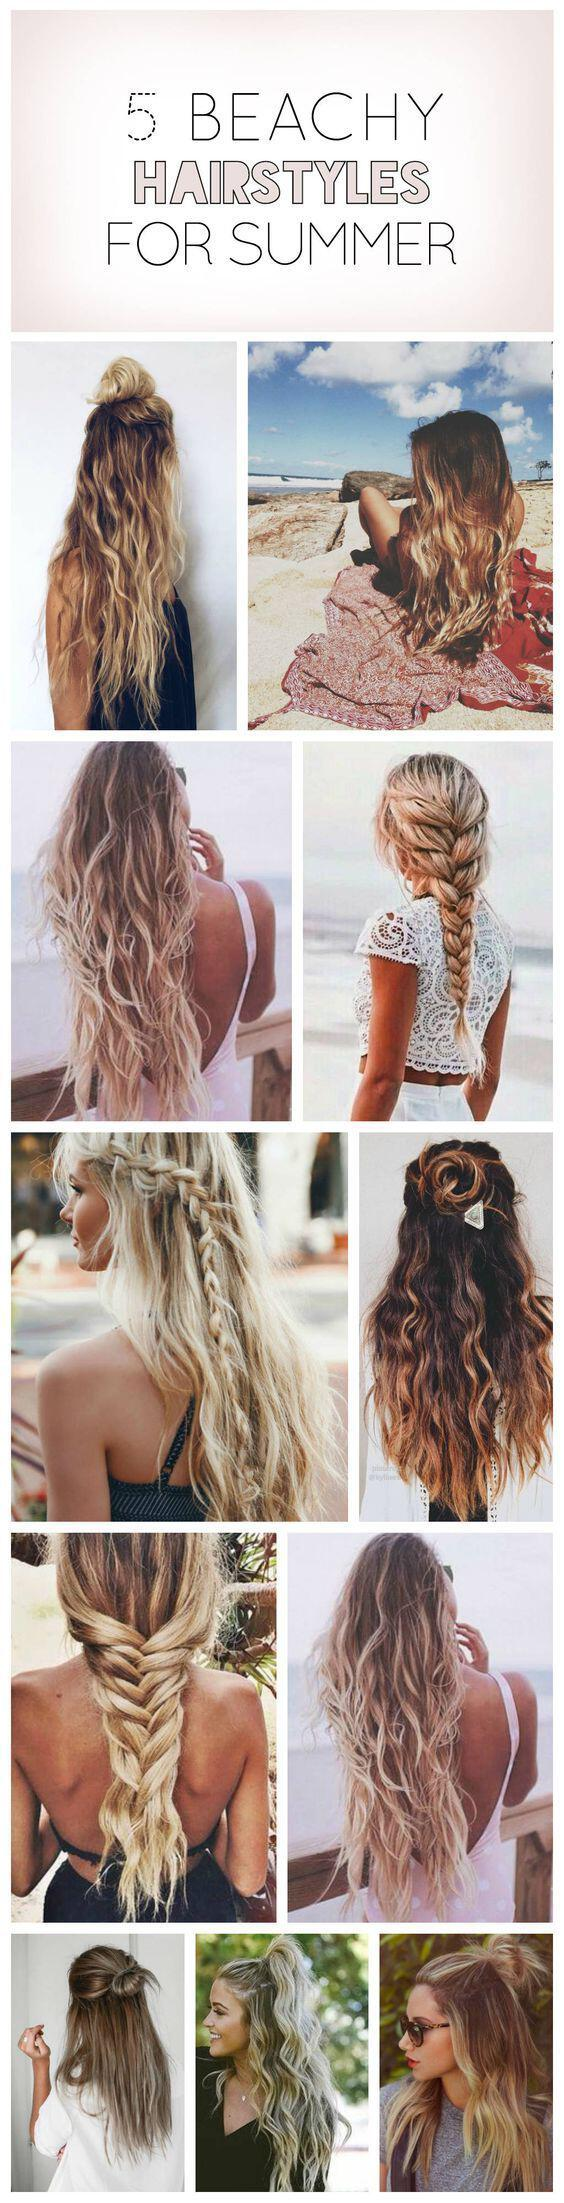 15 gorgeous and easy beach hairstyles to rock this summer 1 - 15 Gorgeous and Easy Beach Hairstyles to rock this summer